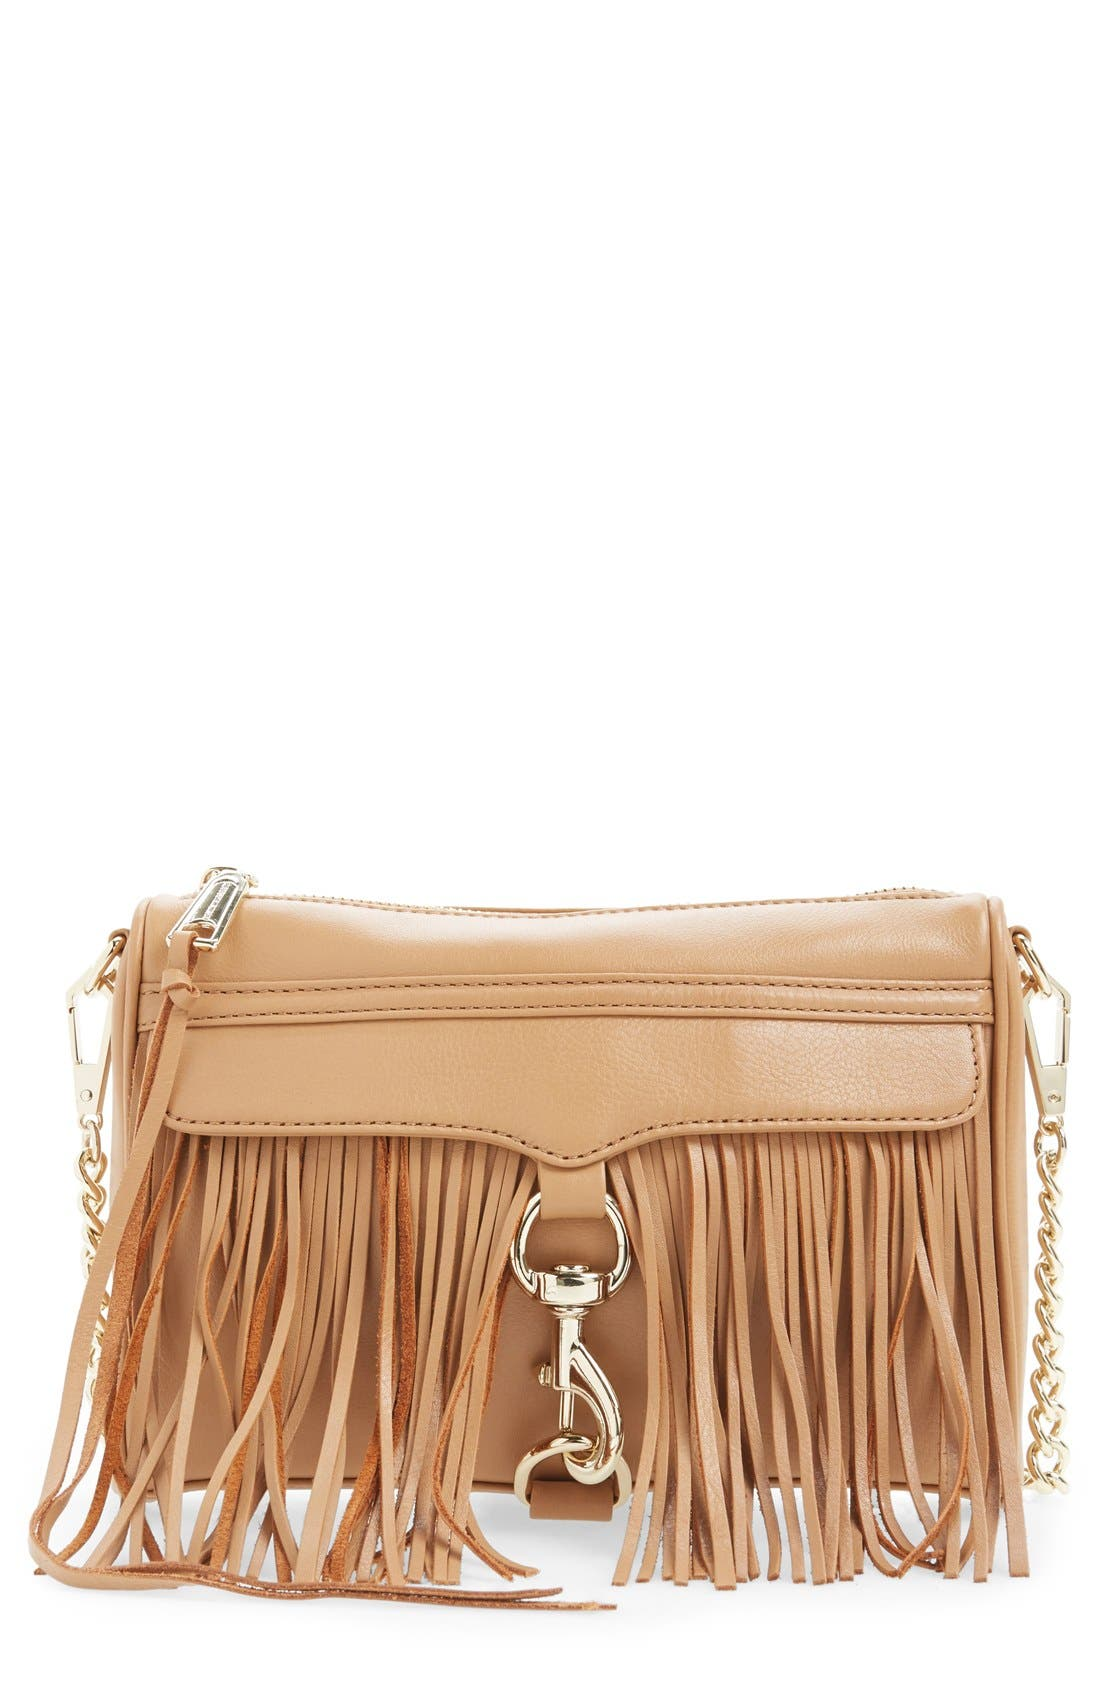 Alternate Image 1 Selected - Rebecca Minkoff 'Fringe Mini MAC' Convertible Crossbody Bag (Nordstrom Exclusive)